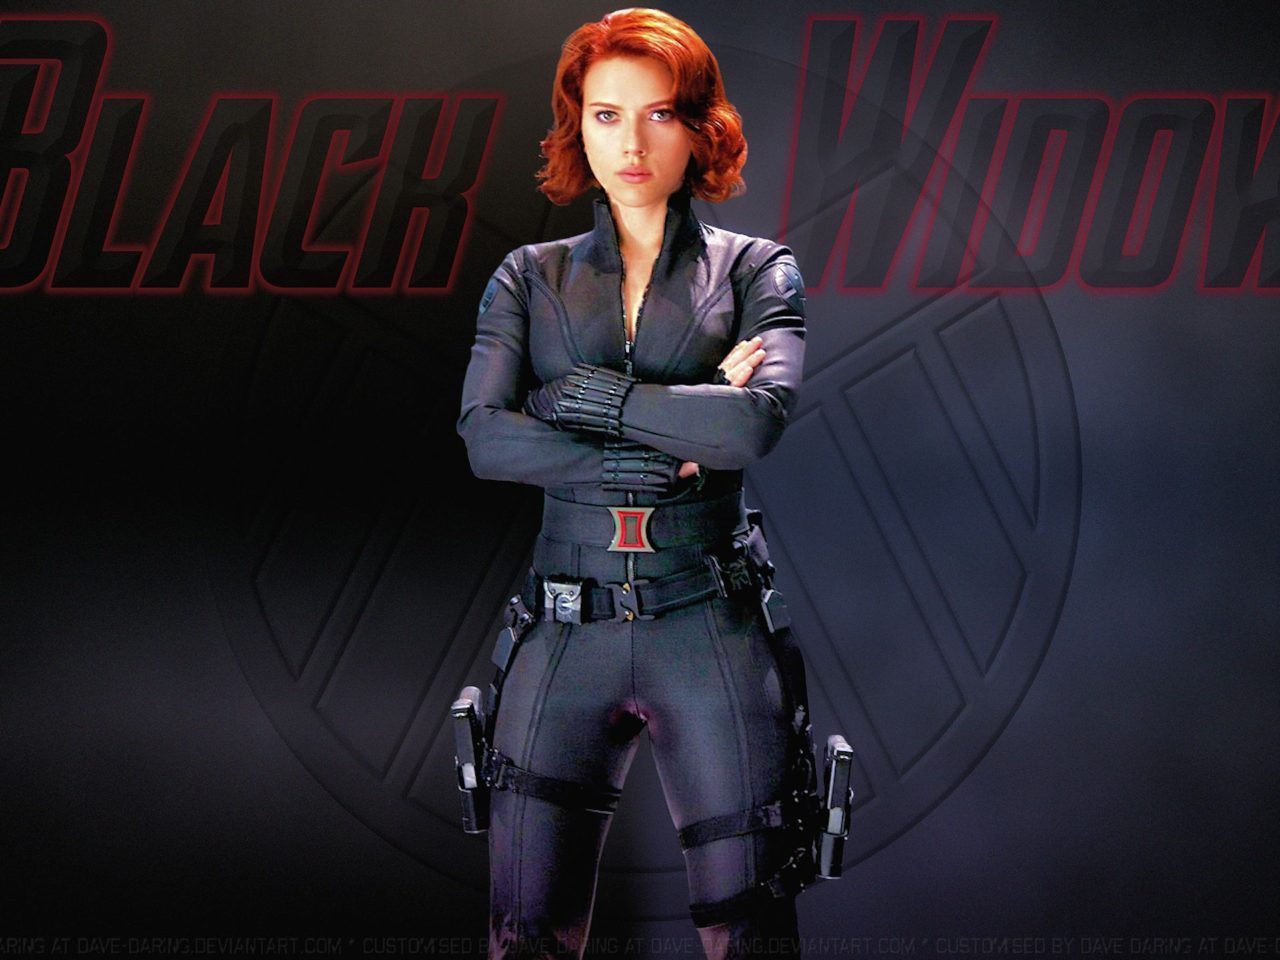 Get Iphone X Wallpaper Black Widow Scarlett Johansson Avengers Age Of Ultron Full